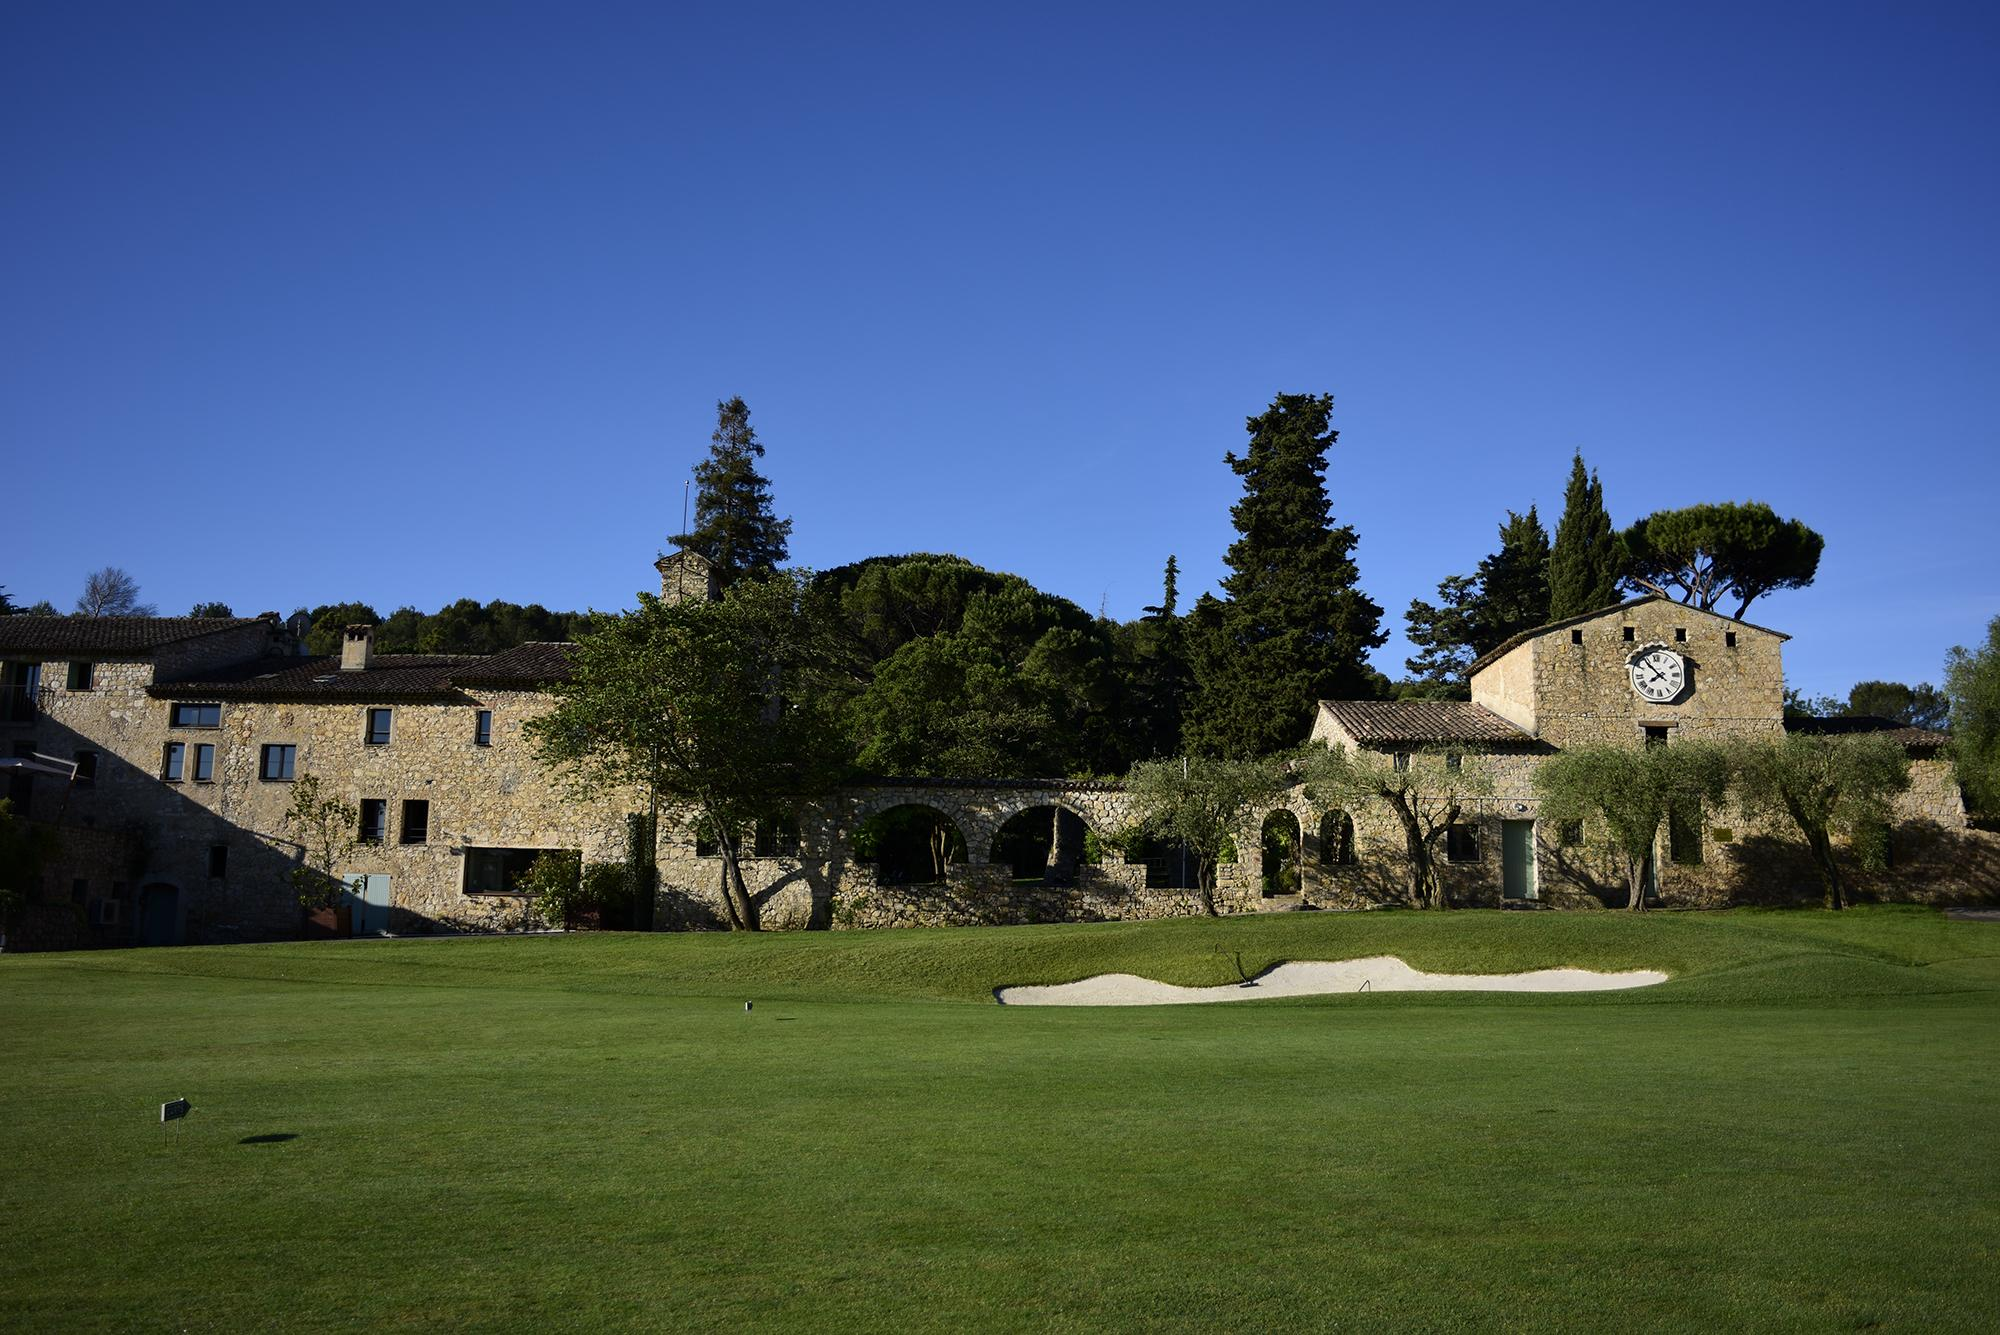 The Golf Country Club Cannes Mougins's lovely golf course situated in brilliant South of France.